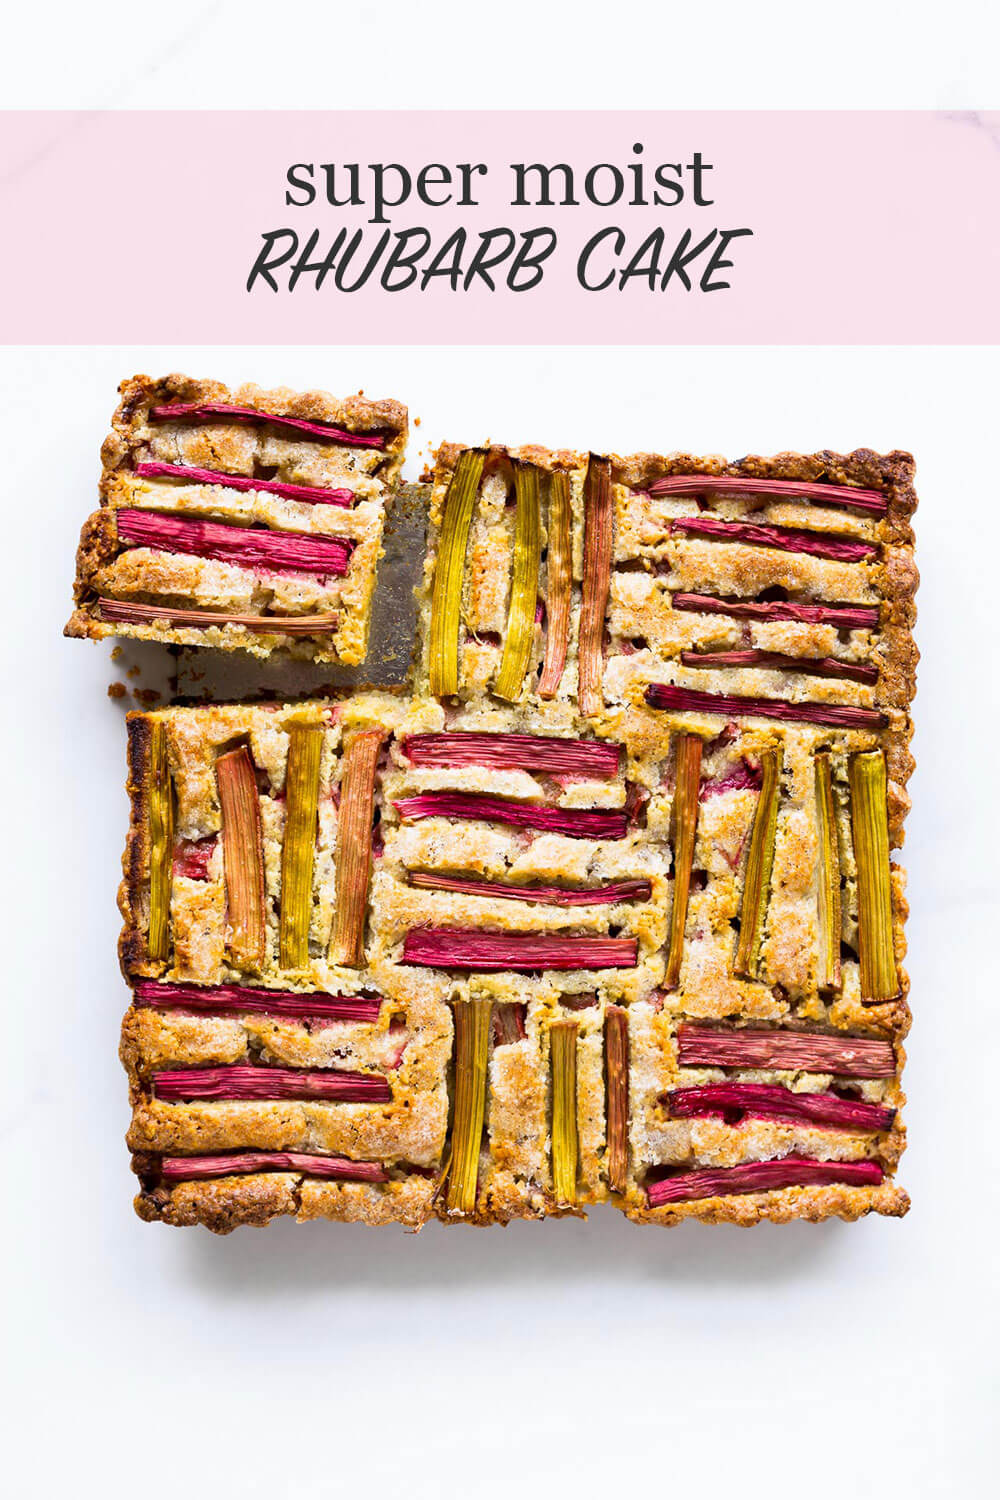 Rhubarb cake with rhubarb arrangement in woven pattern